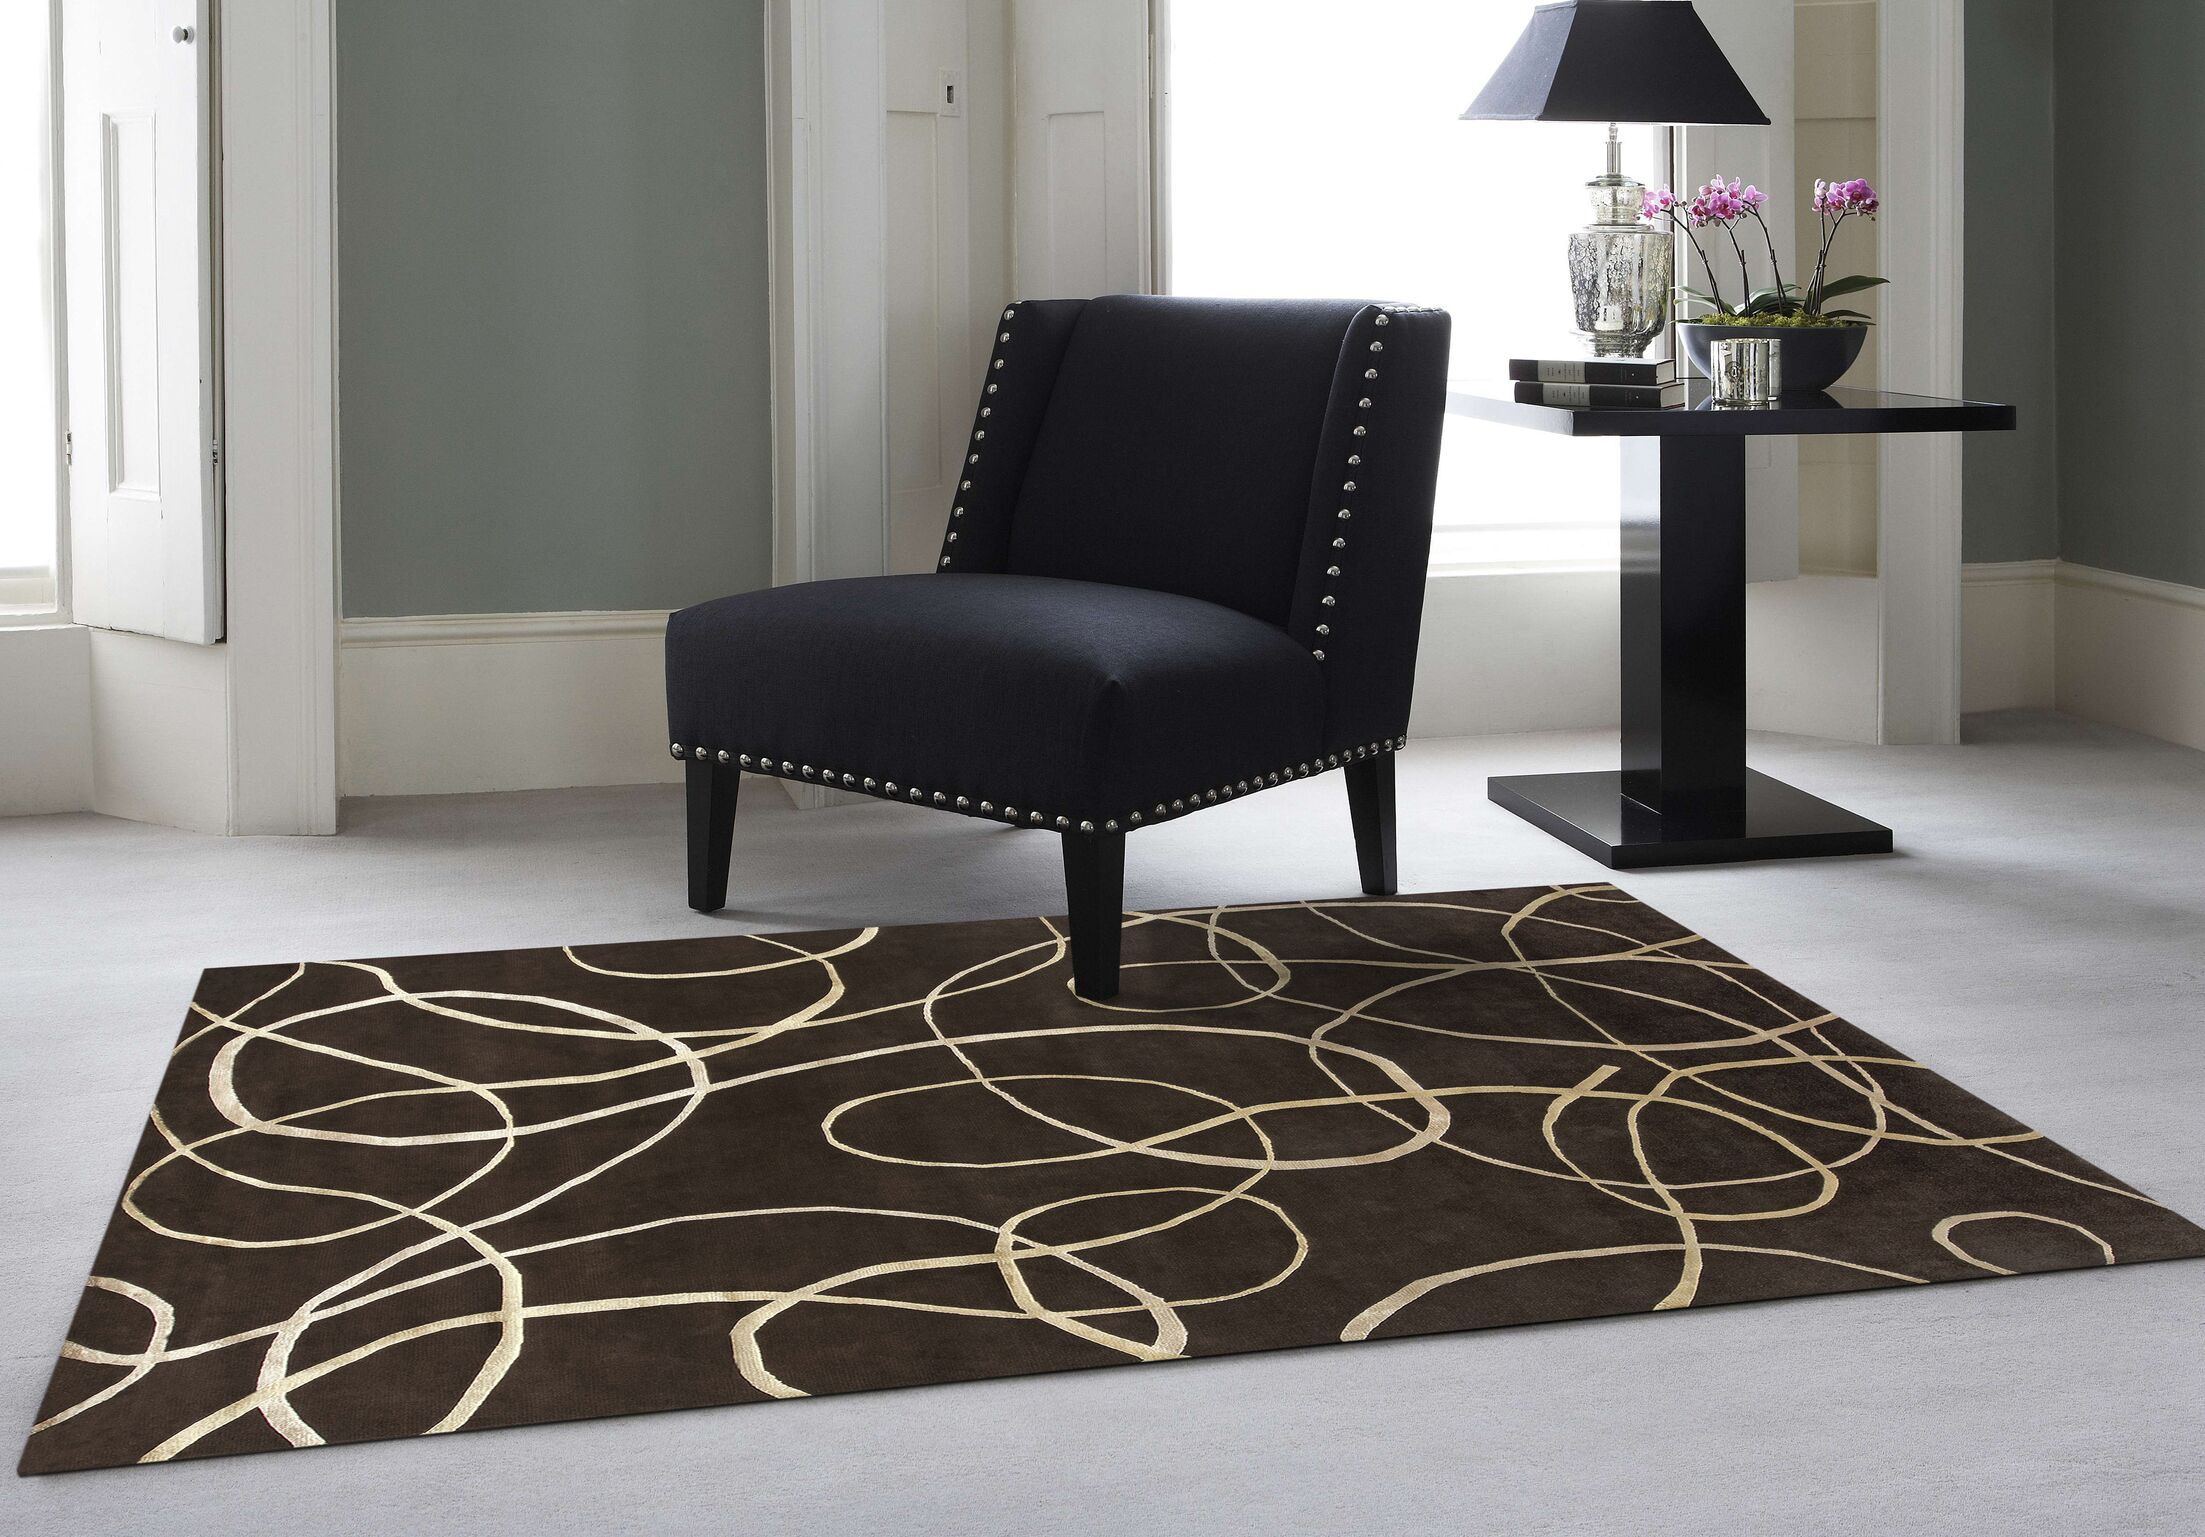 Emborough Hand-Knotted Brown Area Rug Rug Size: Rectangle 6' x 9'